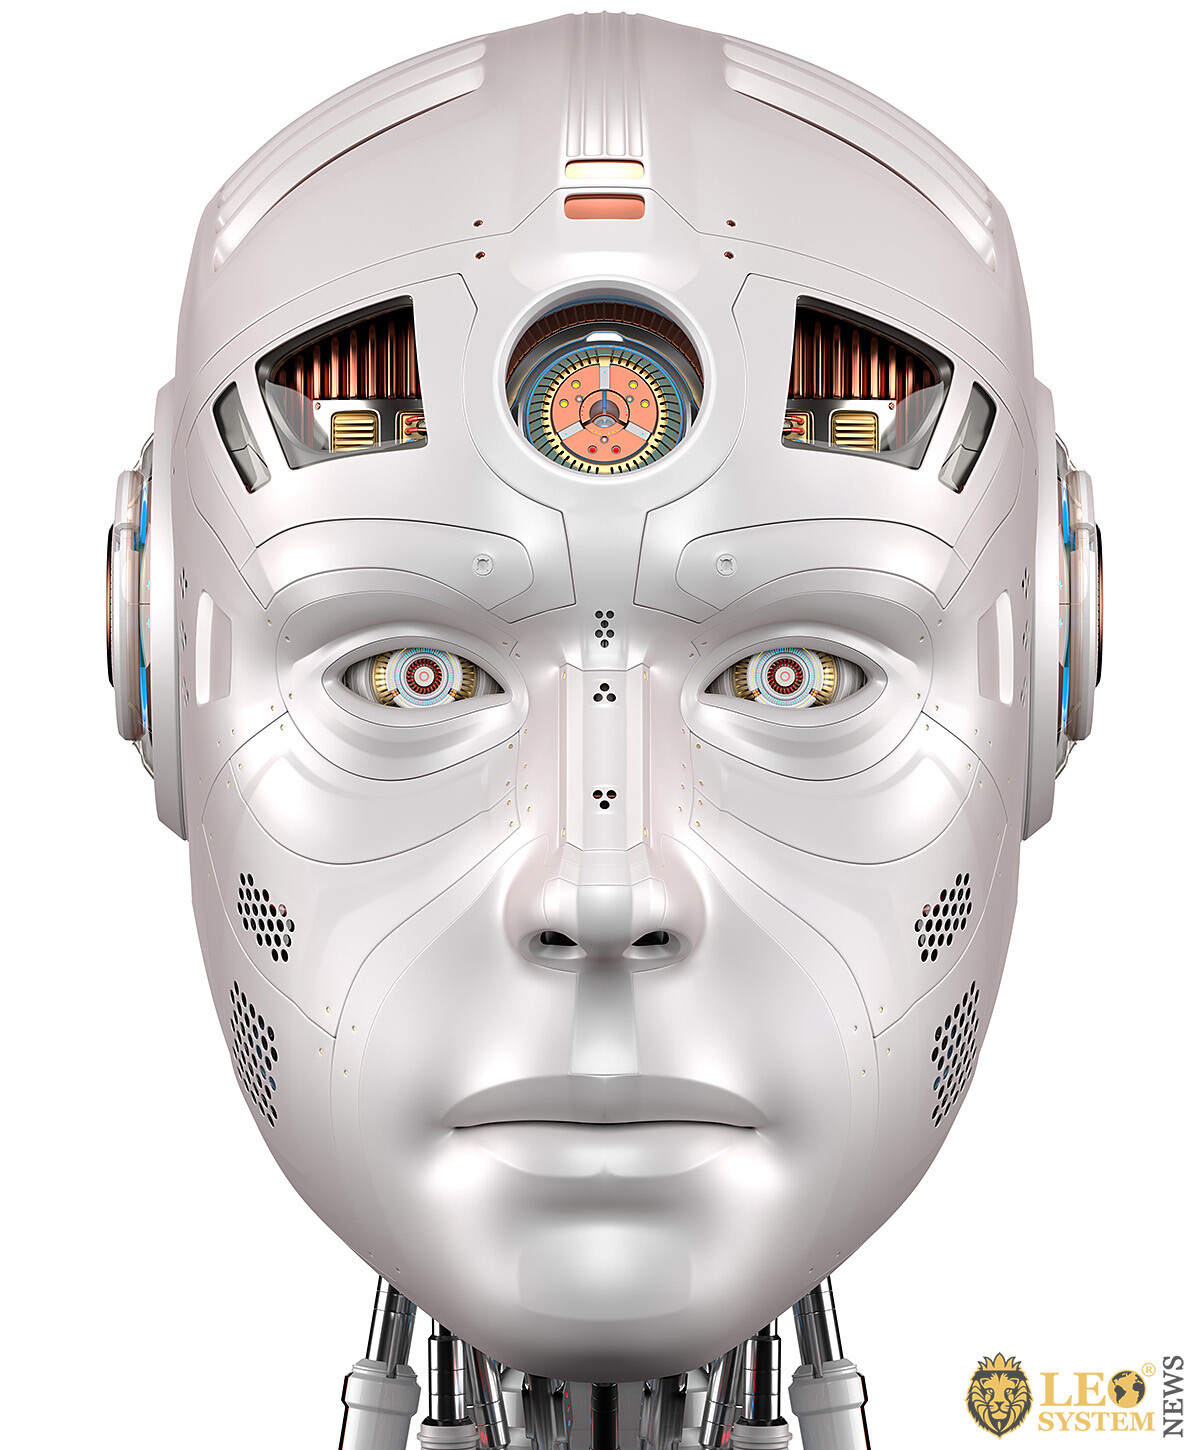 Image of the head of a quality robot